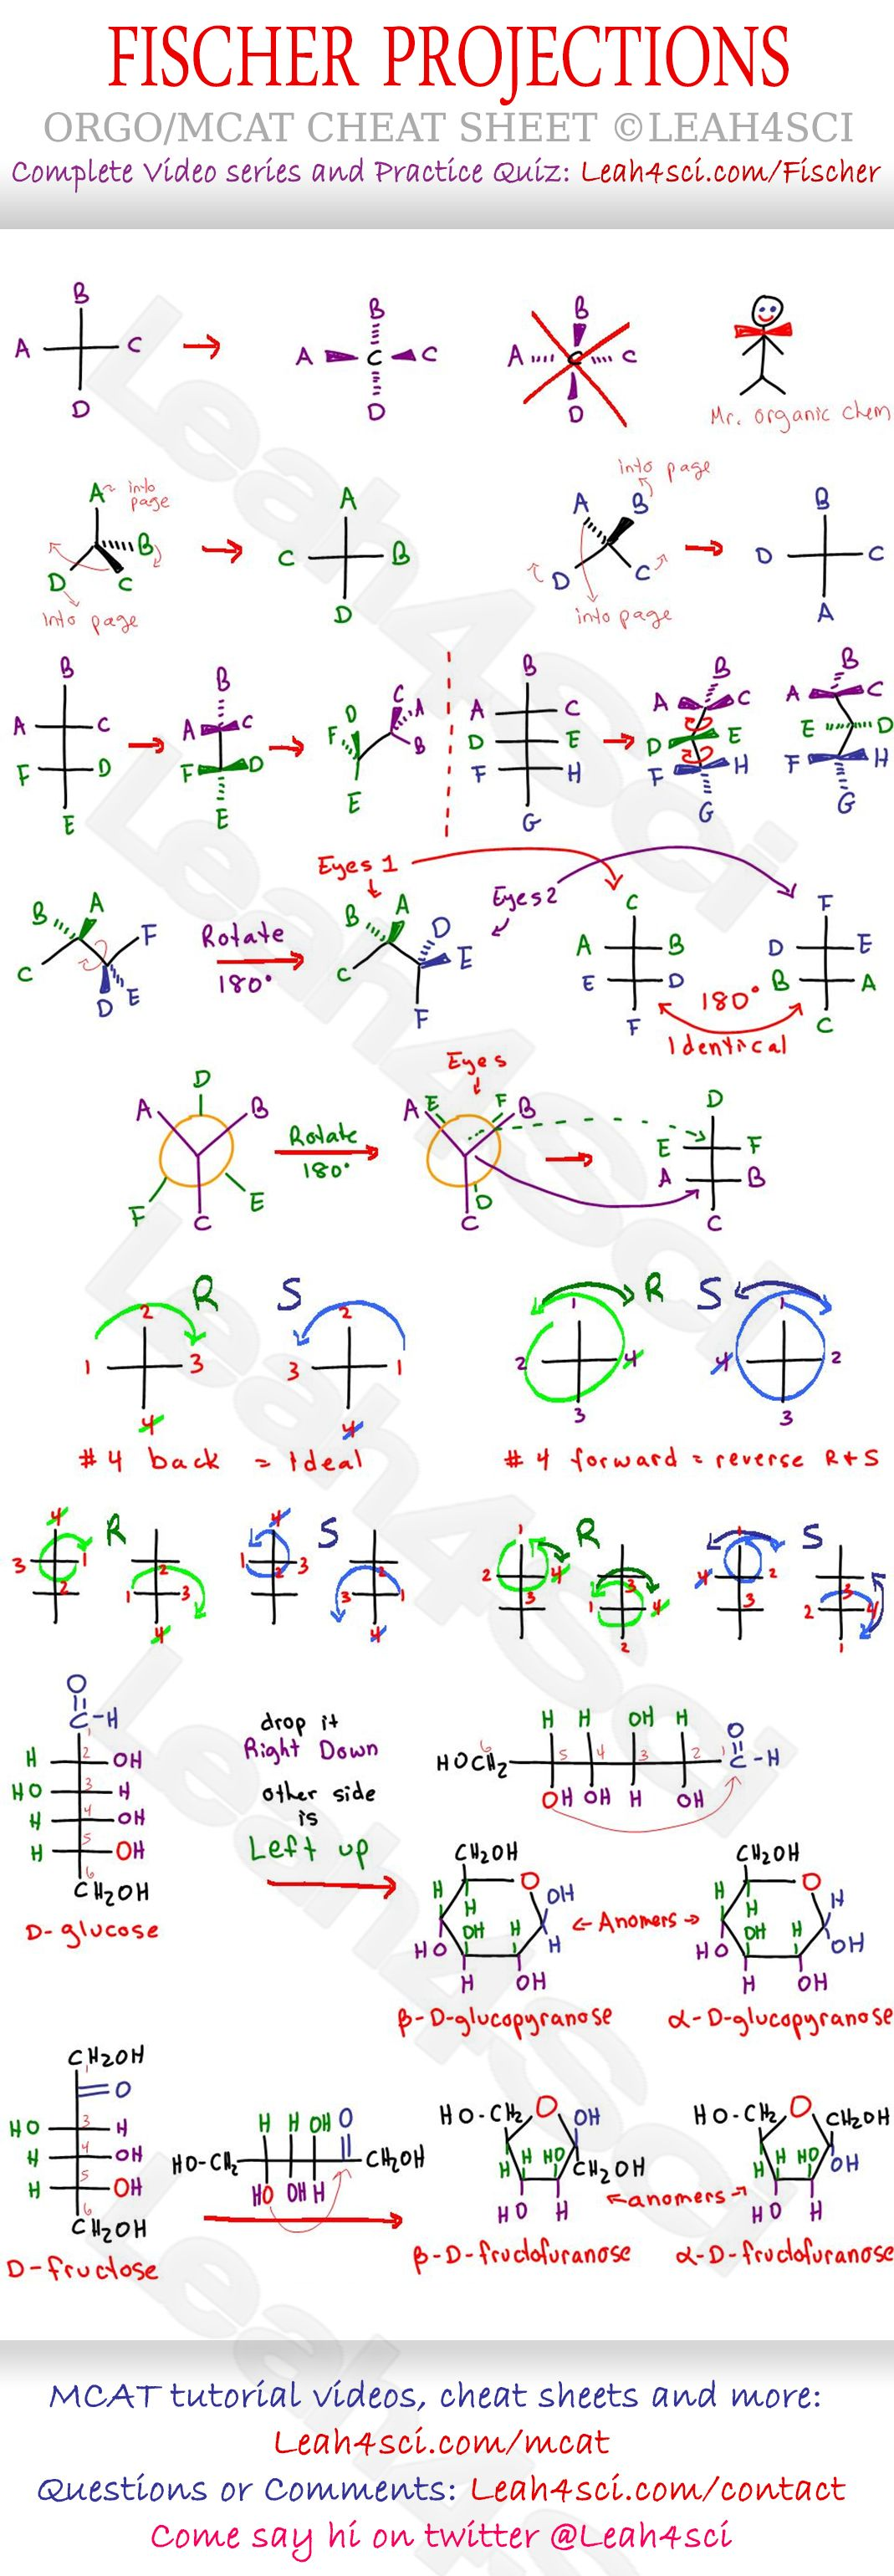 Fischer Projections Cheat Sheet Study Guide draw and